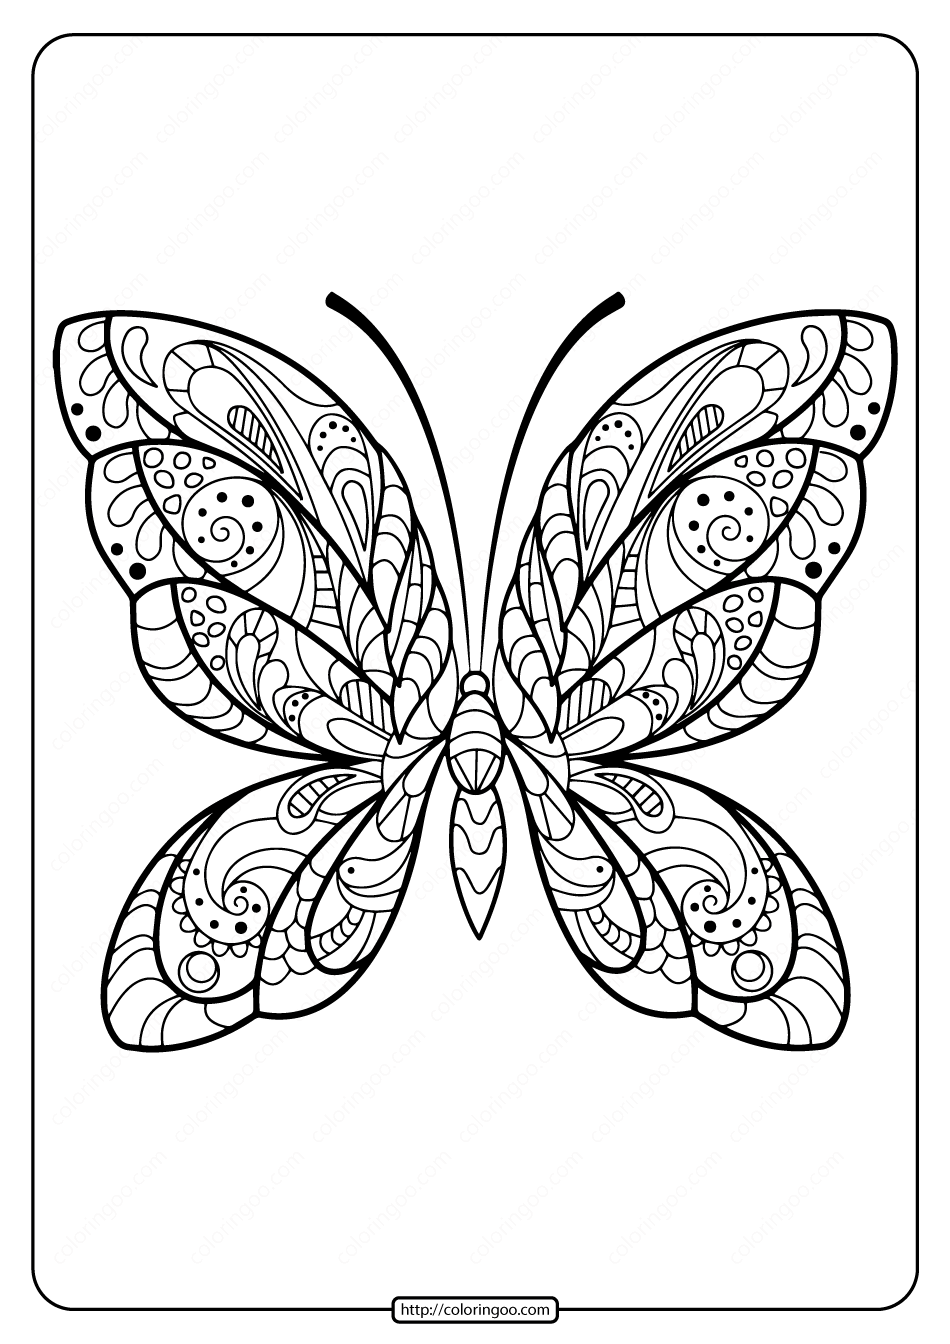 Printable Butterfly Mandala Pdf Coloring Pages 38 Insect Coloring Pages Butterfly Coloring Page Pattern Coloring Pages